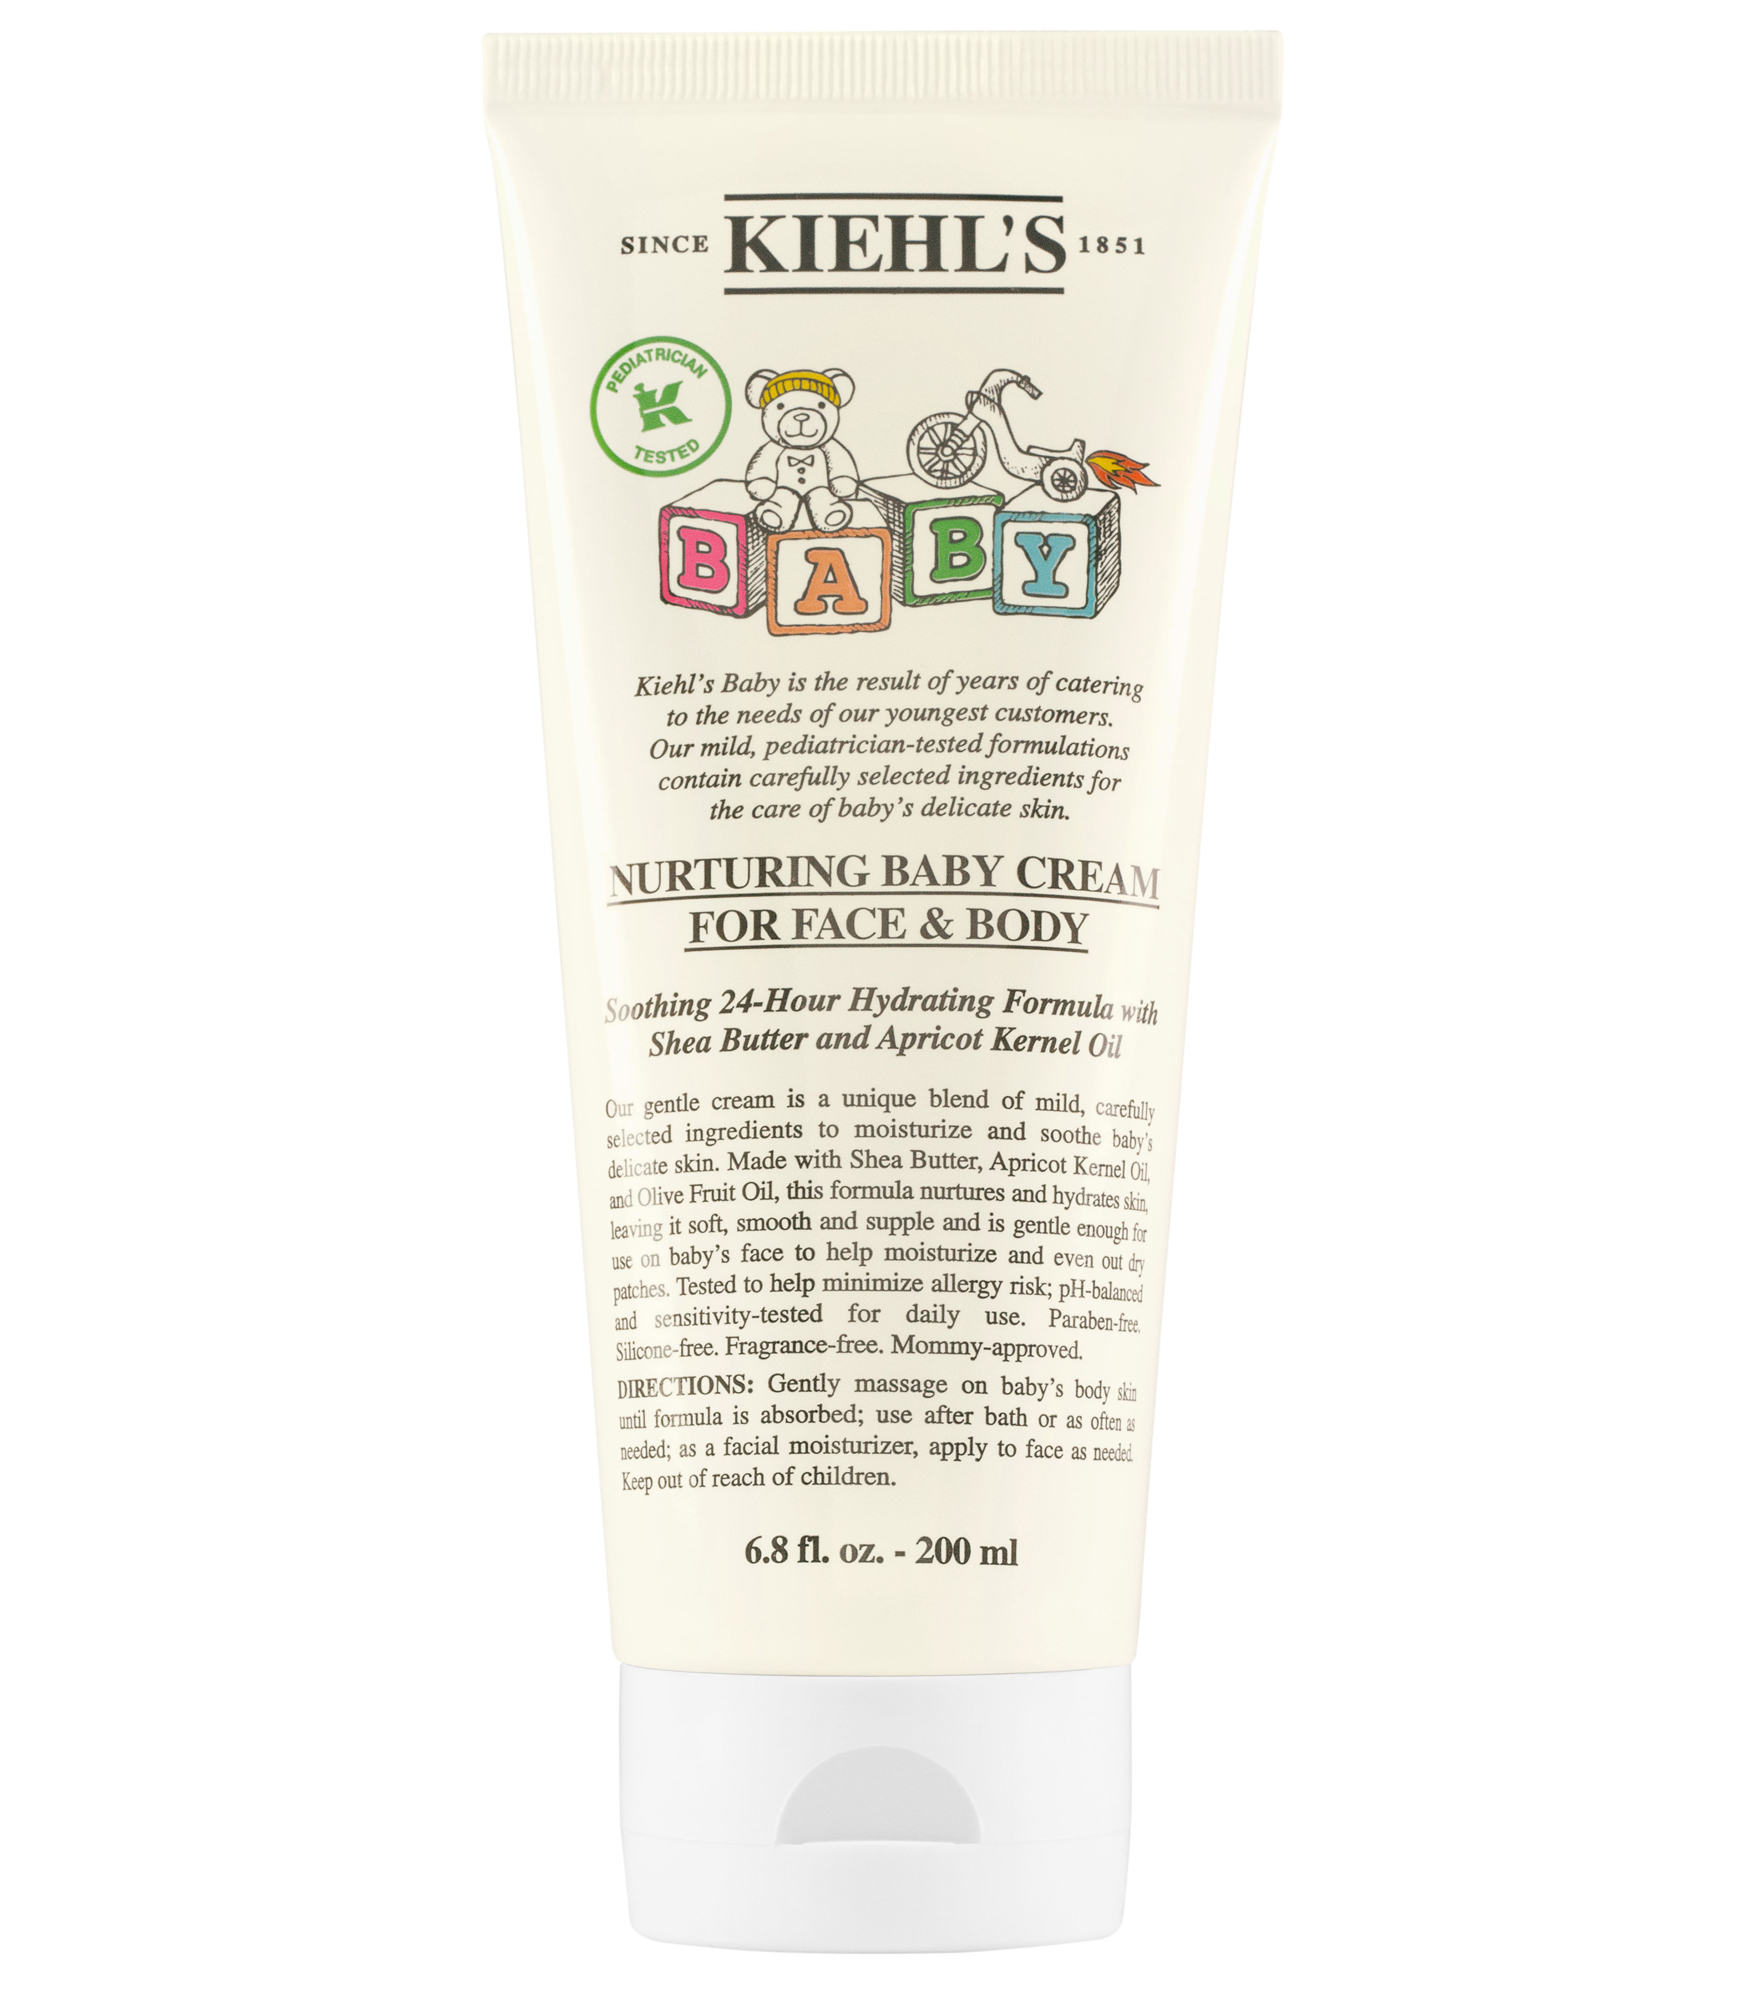 Nurturing Baby Cream For Face Body Kiehls Hydrating Moisturizer